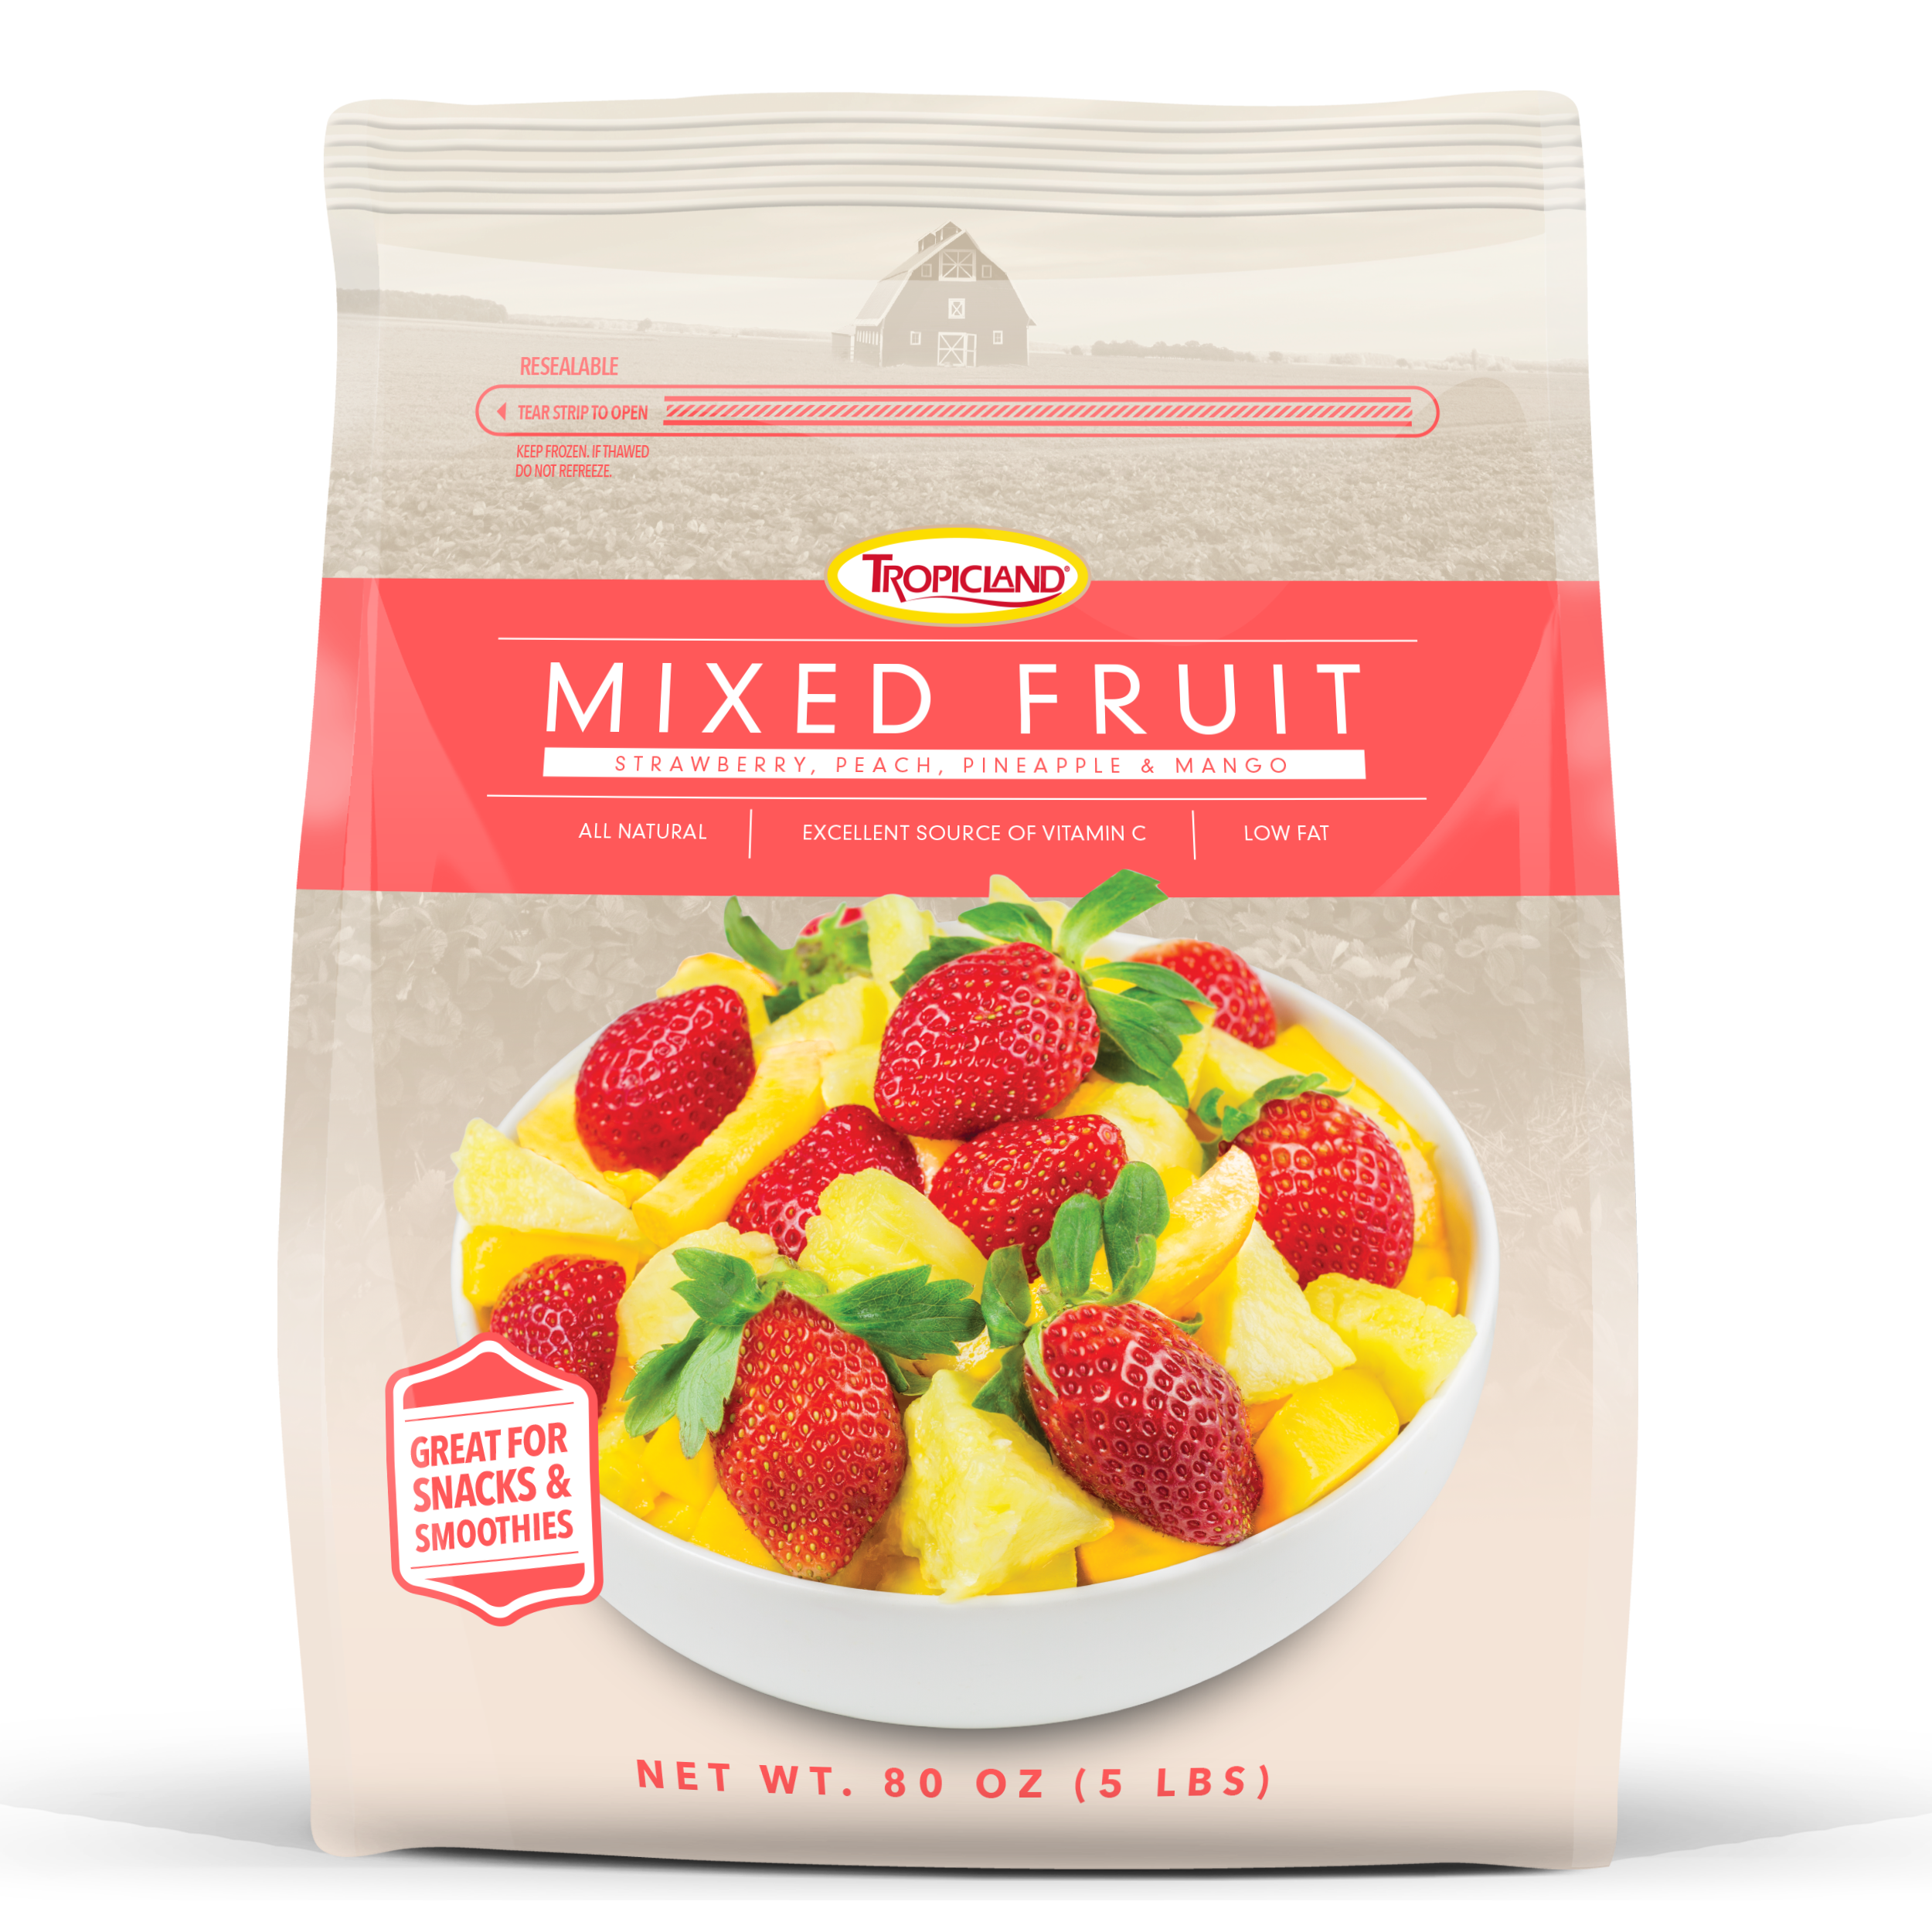 Mixed Fruit with Your Label